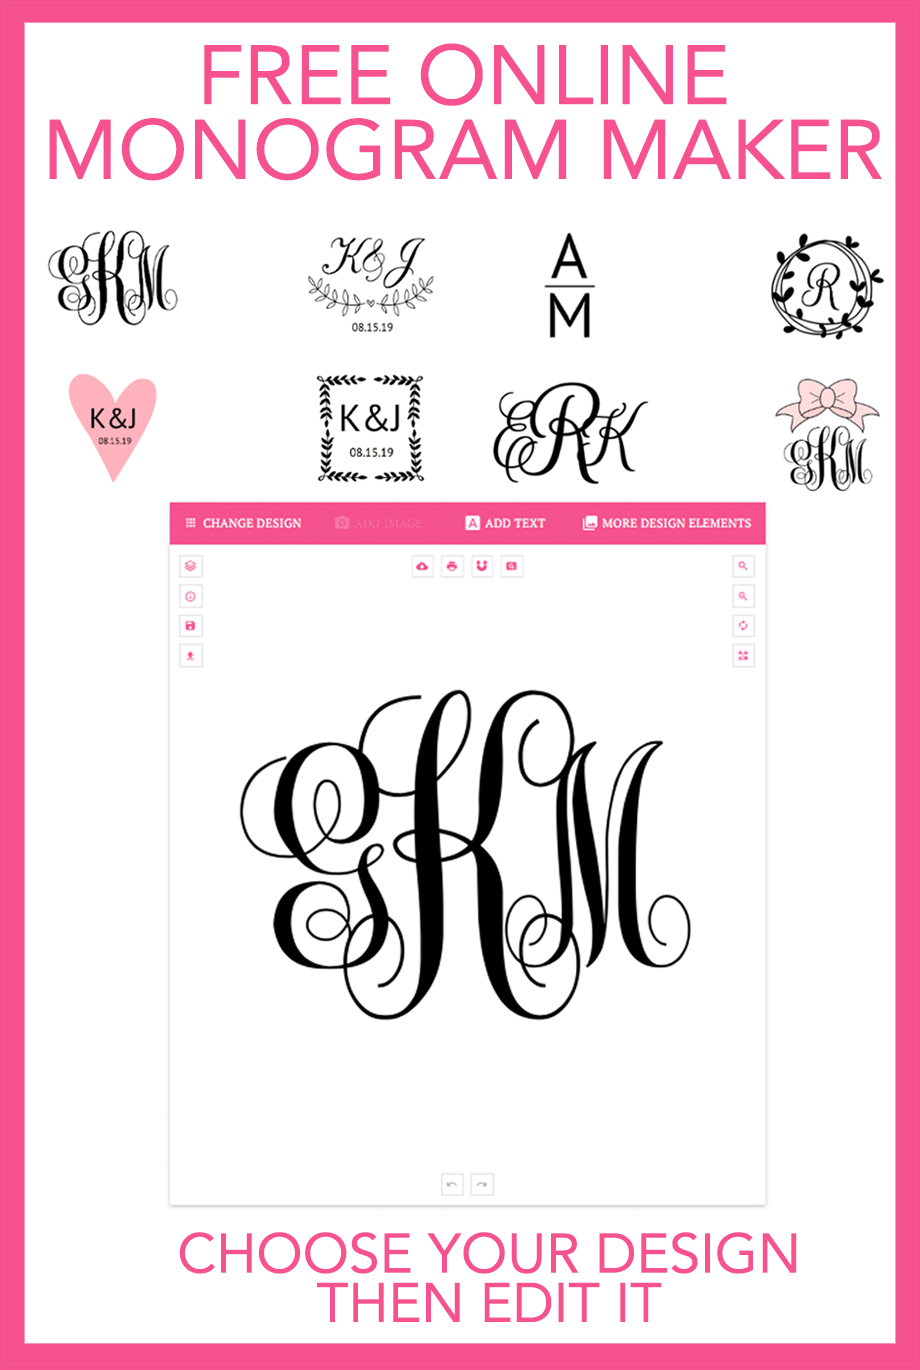 Make Your Own Monograms Online With This Free Online Monogram Maker - Monogram Maker Online Free Printable